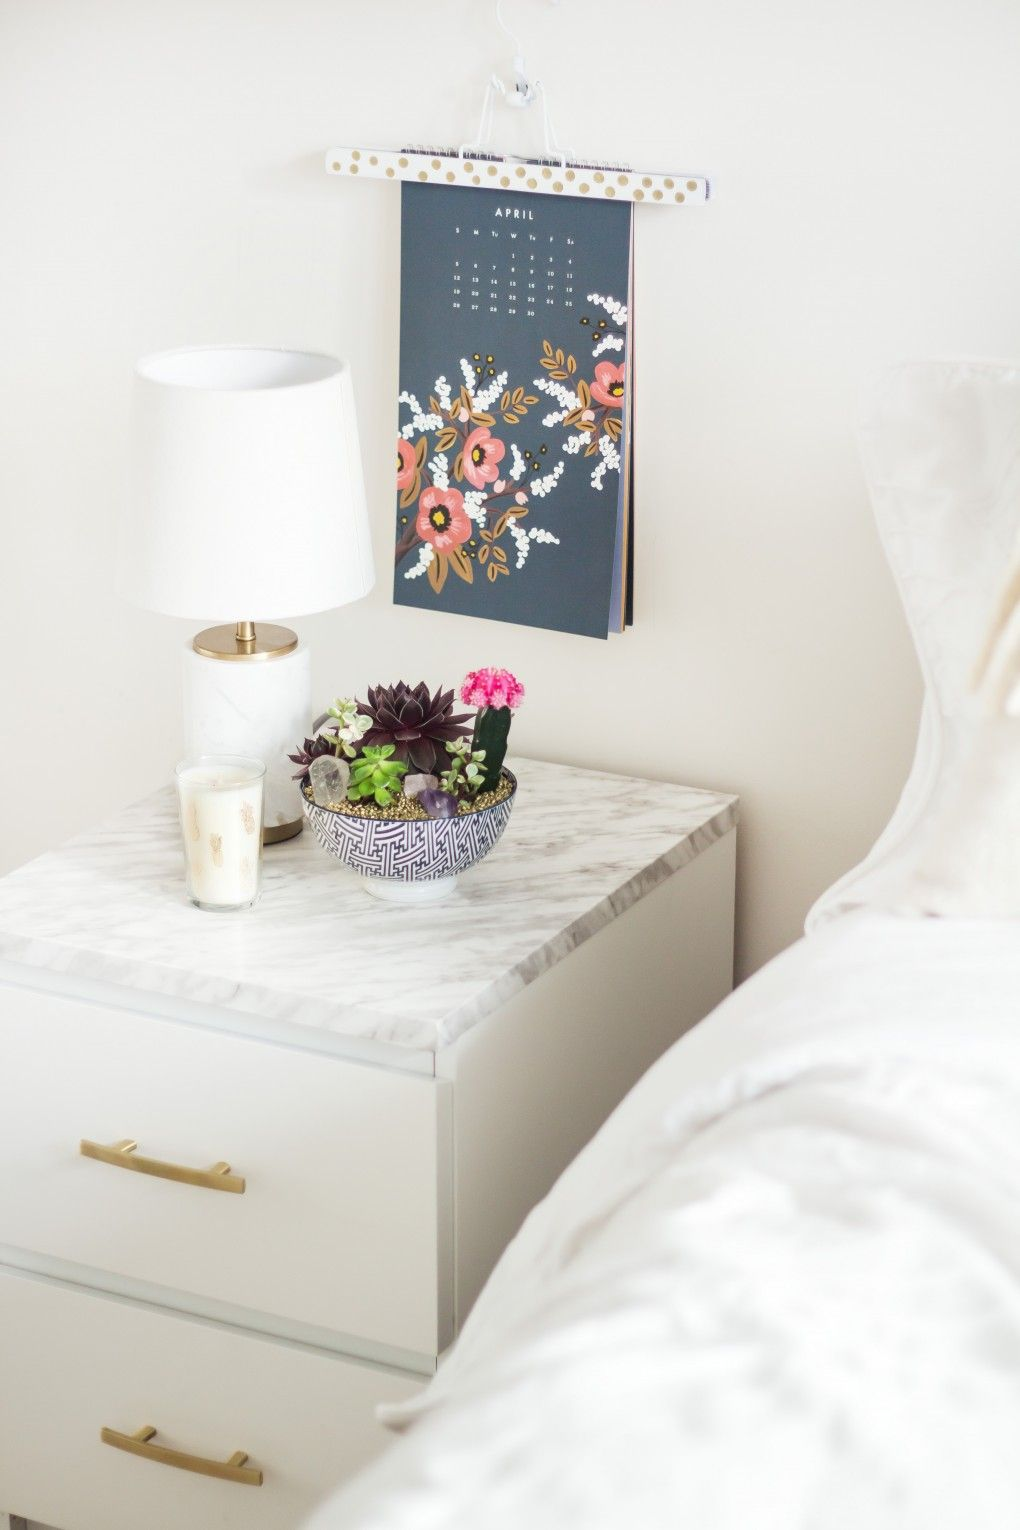 Ikea Malm End Table Diy The Blondielocks Life Style Ikea Nightstand Ikea Diy Dorm Room Designs